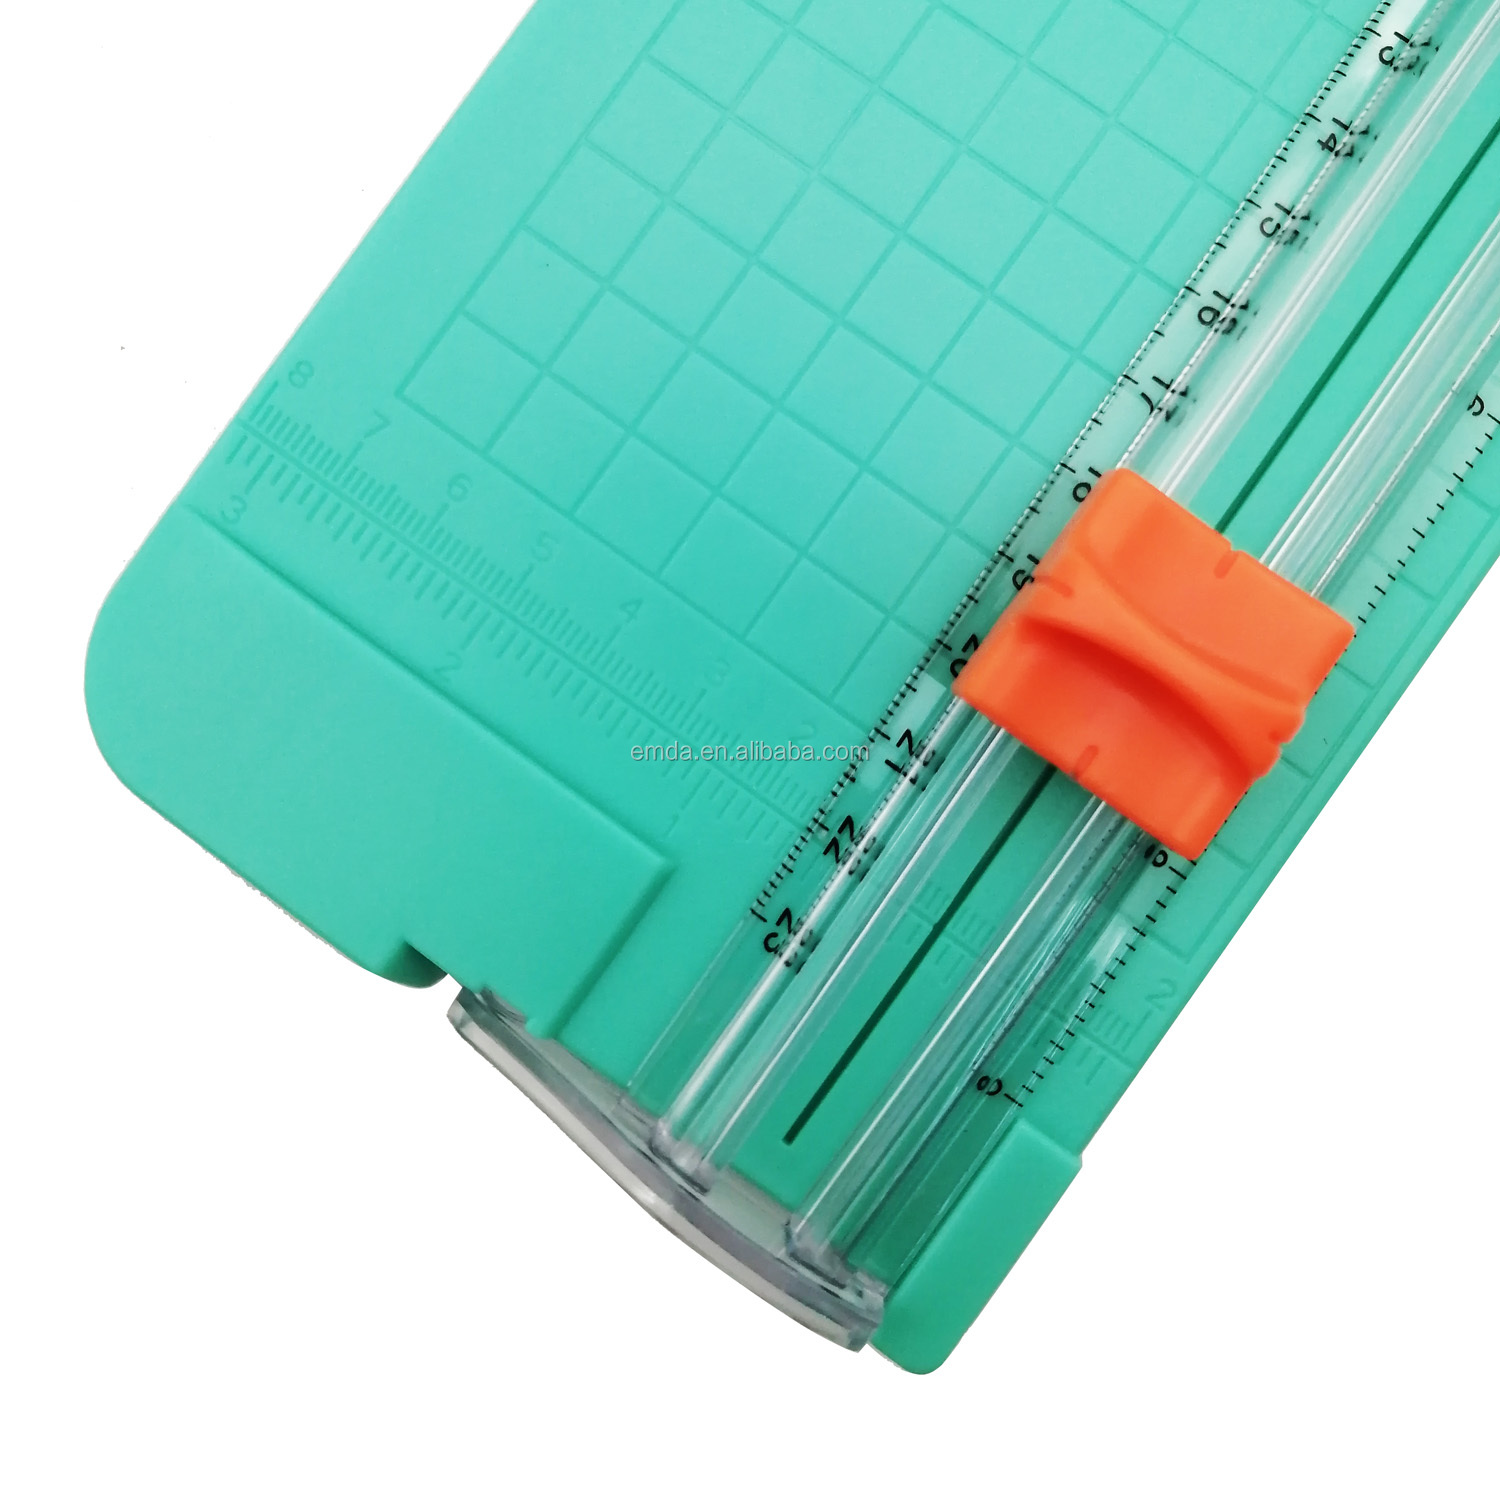 Office custom logo 10 sheets A5 office manual mini rotary paper cutter trimmer with pull out ruler for paper cut